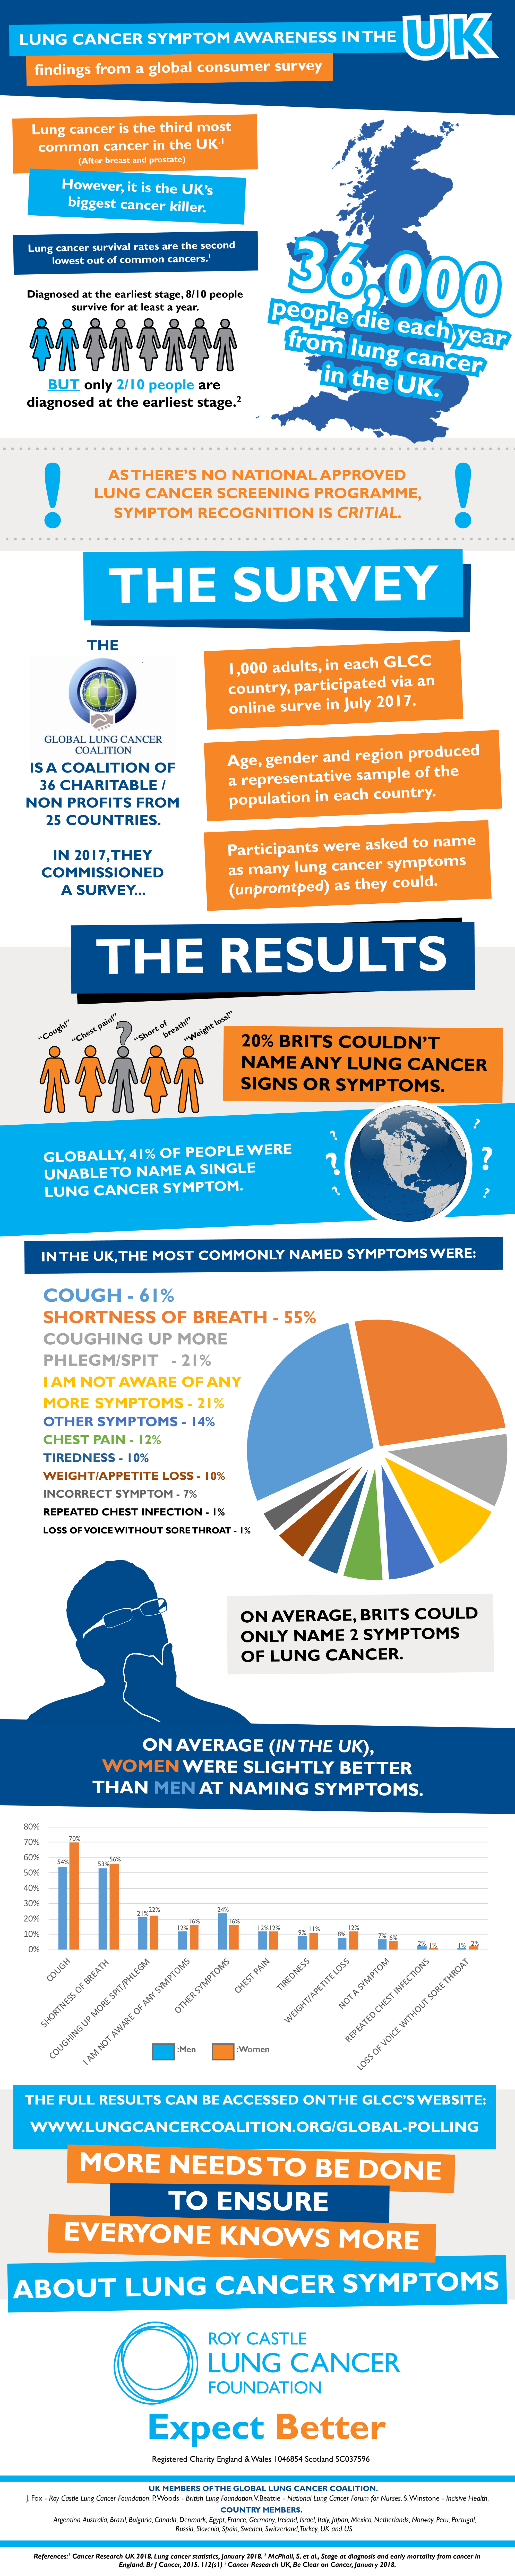 Infographic highlighting lung cancer symptoms awareness in the UK